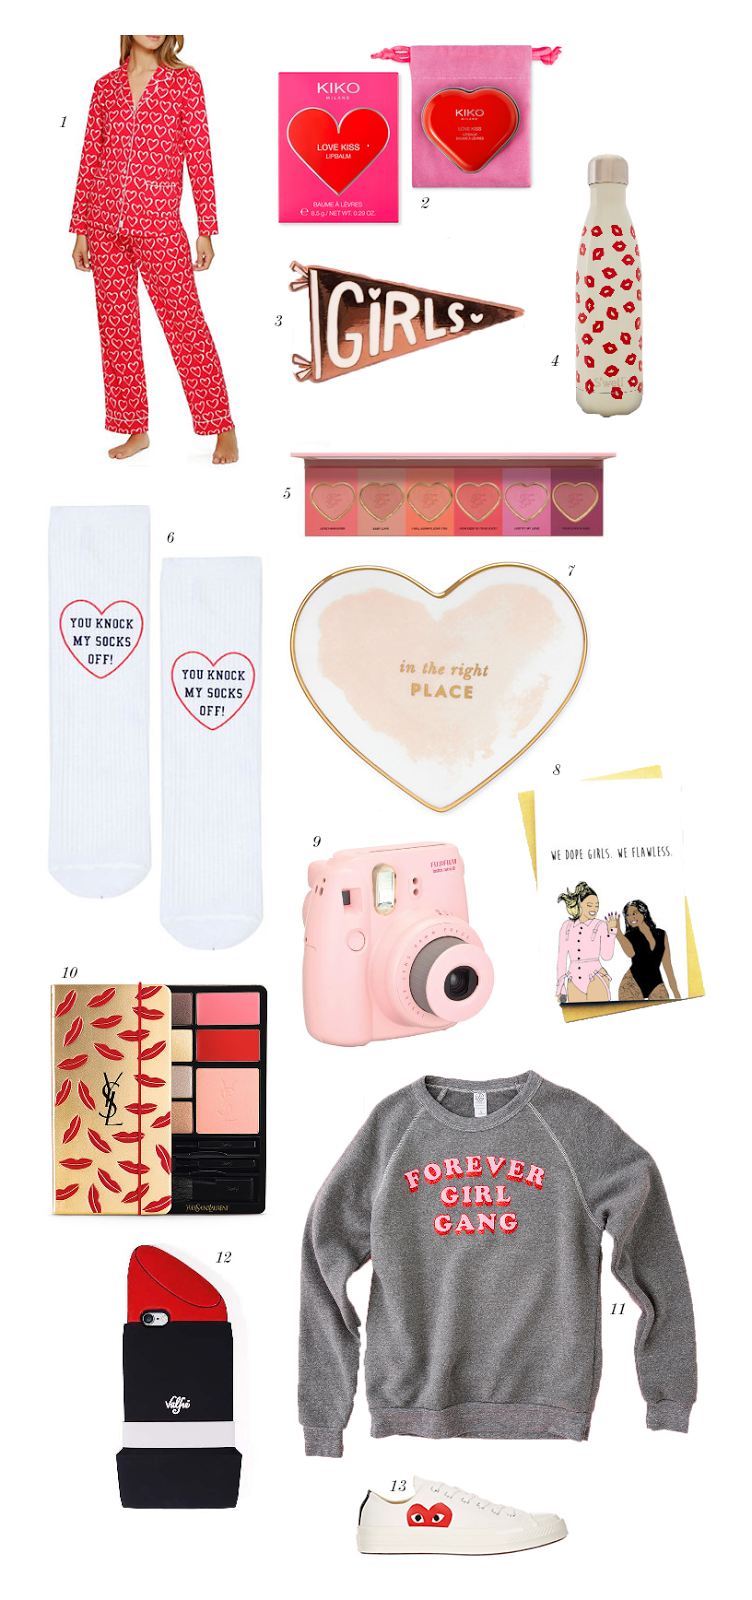 . DKNY Pajama Set 2.Kiko Love Kiss Lip Balm 3. Girls Pin 4.Swell Love Collection Bottle 5. Too Faced Love Flush Blush 6. Topshop Valentines Socks 7. Posy Court Heart Dish 8. We Dope Girls We Flawless Card 9. Fujifilm Instax Camera 10 YSL Kiss Palette 11. Forever Girl Gang Sweatshirt 12.Valfre Lipstick Phone case 13.  Comme des Garçons Sneakers